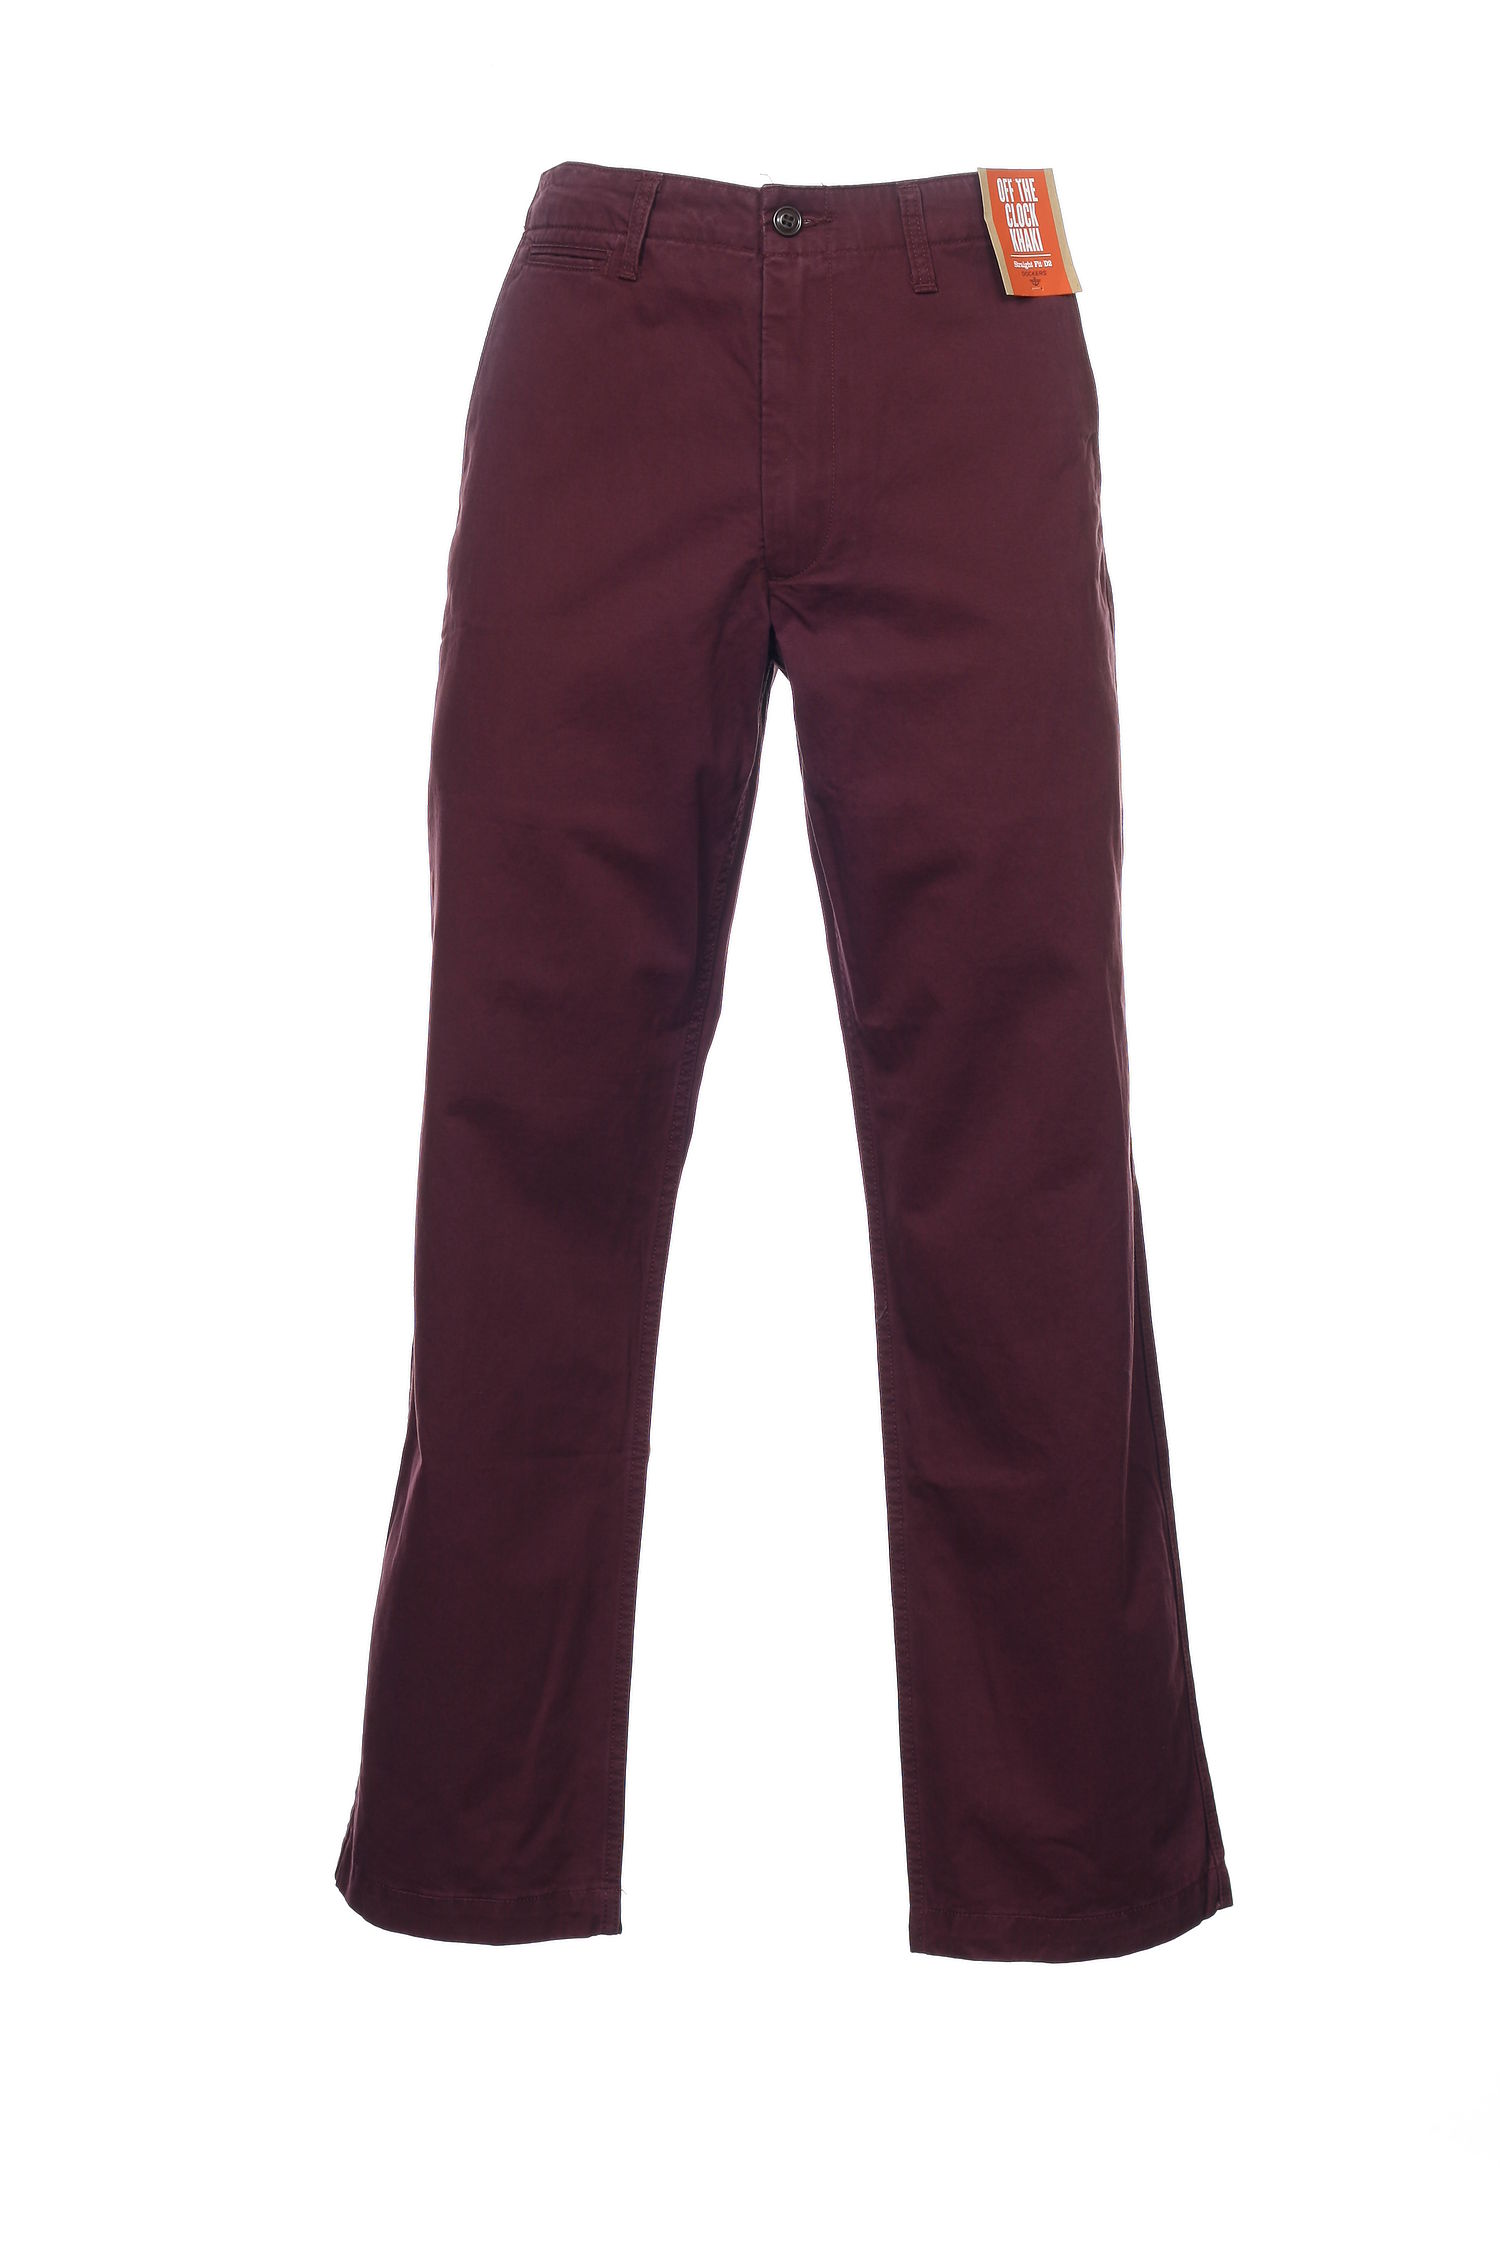 Dockers Men's Burgundy Flat Front Pants by Dockers